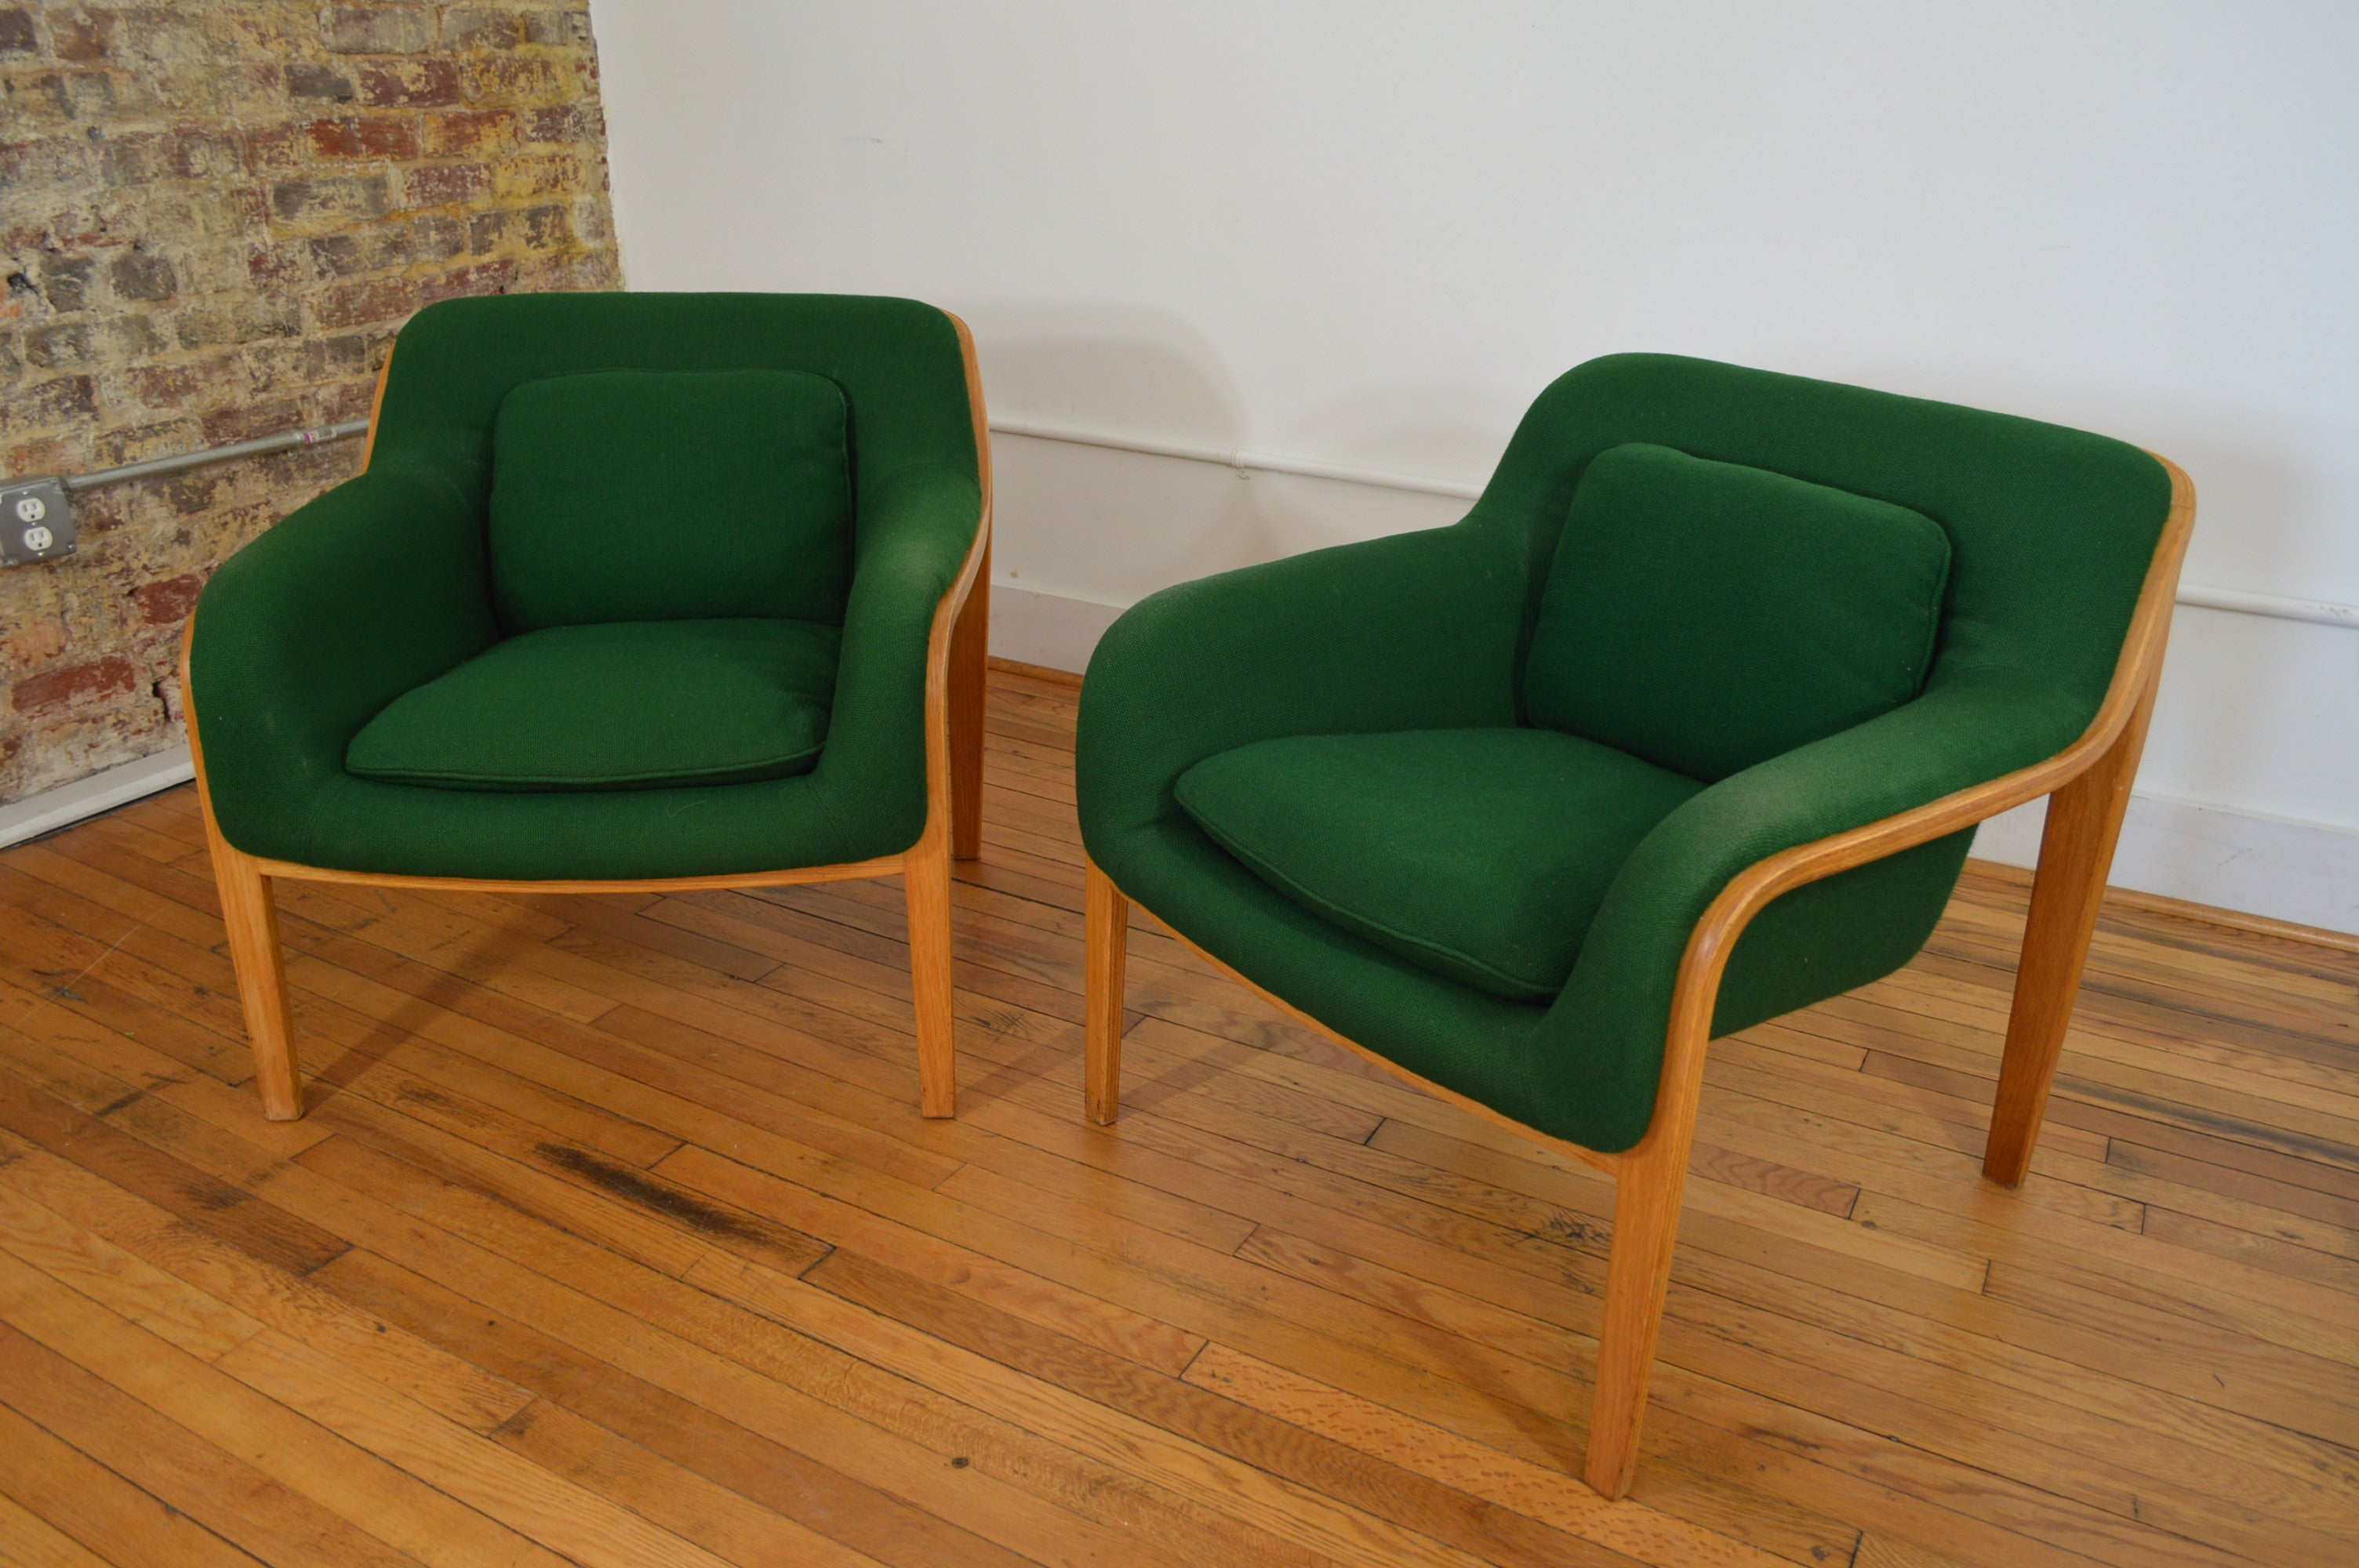 William Stephens For Knoll International Lounge Chairs In Awesome Green  Upholstery